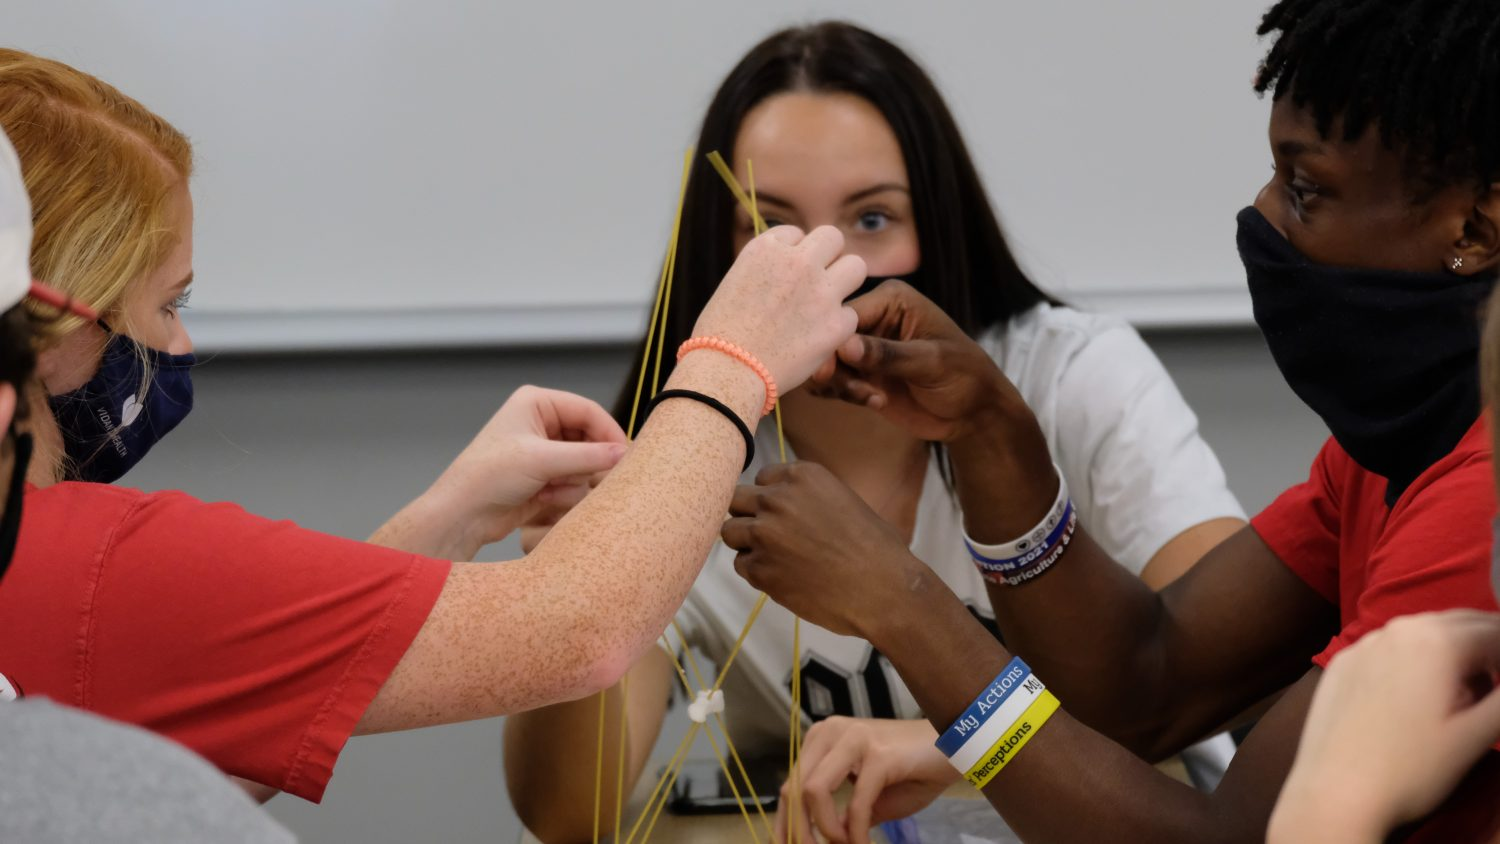 students construct a tower with dried spagetti noodles and marshmallows